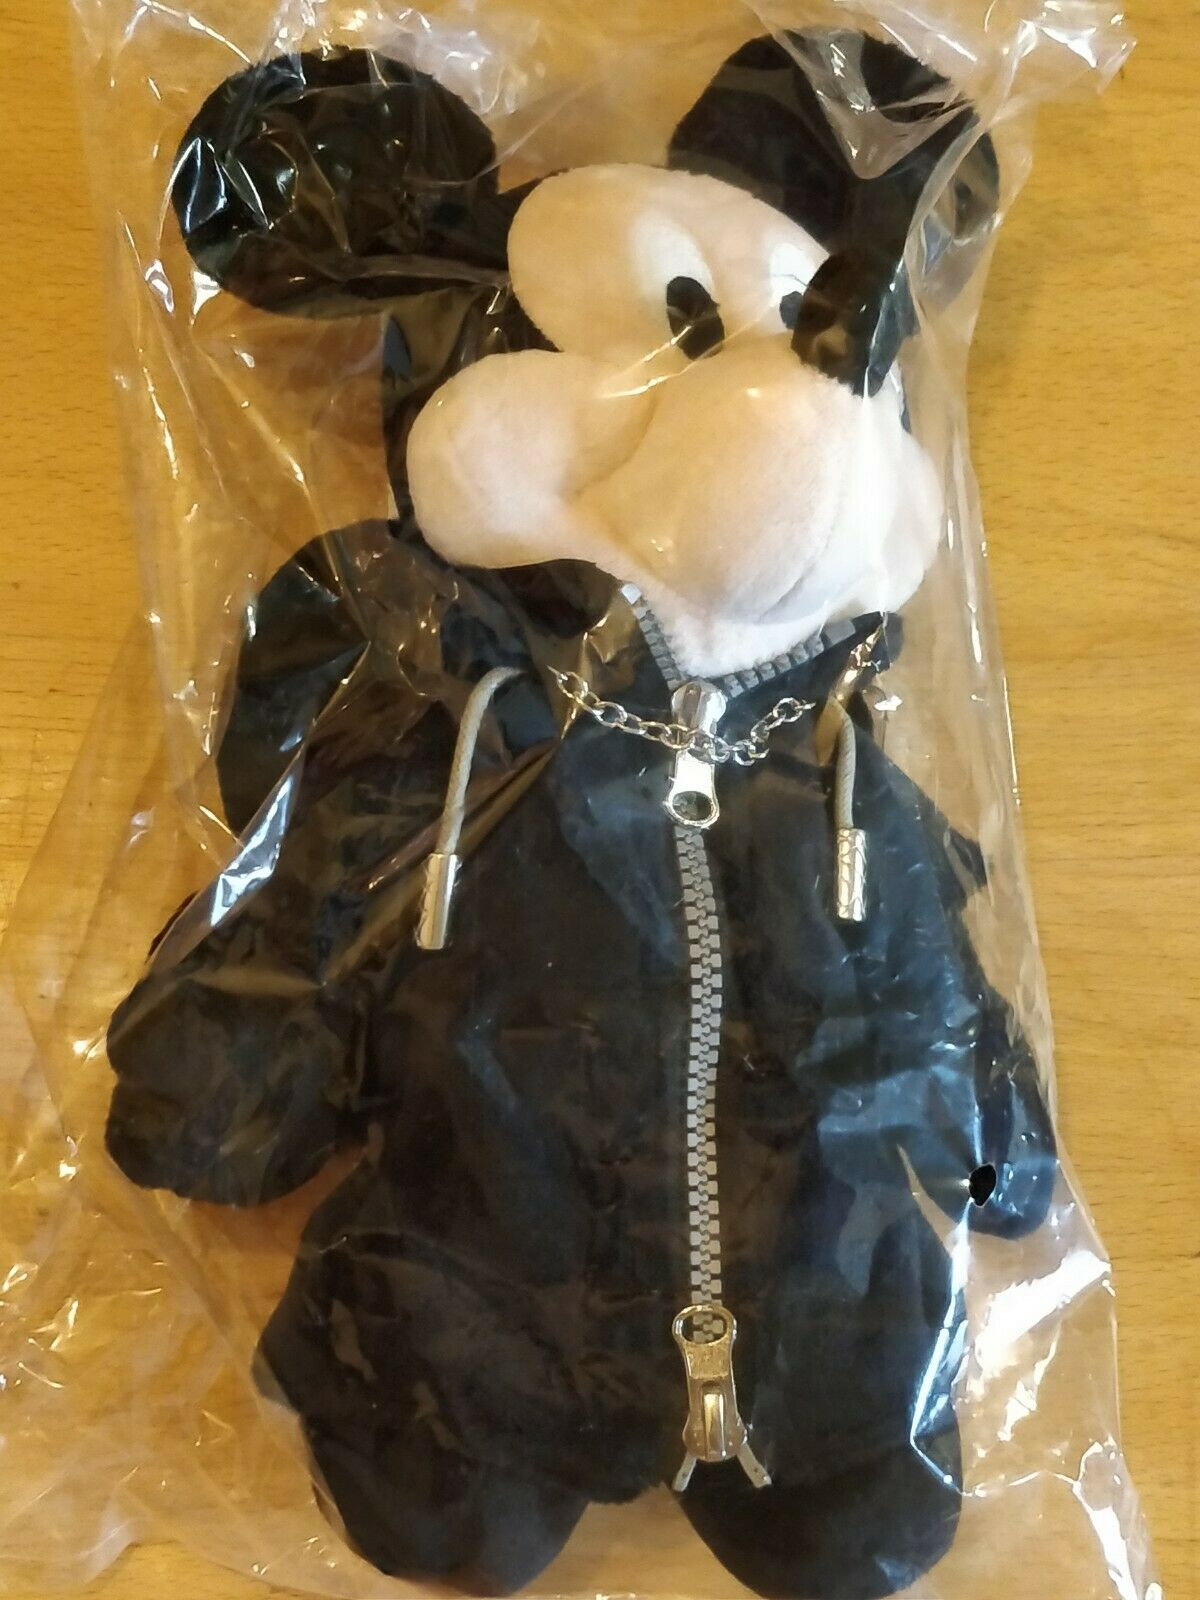 OFFICIAL SQUARE ENIX KINGDOM HEARTS KING MICKEY PLUSH SOFT TOY - NEW AND SEALED